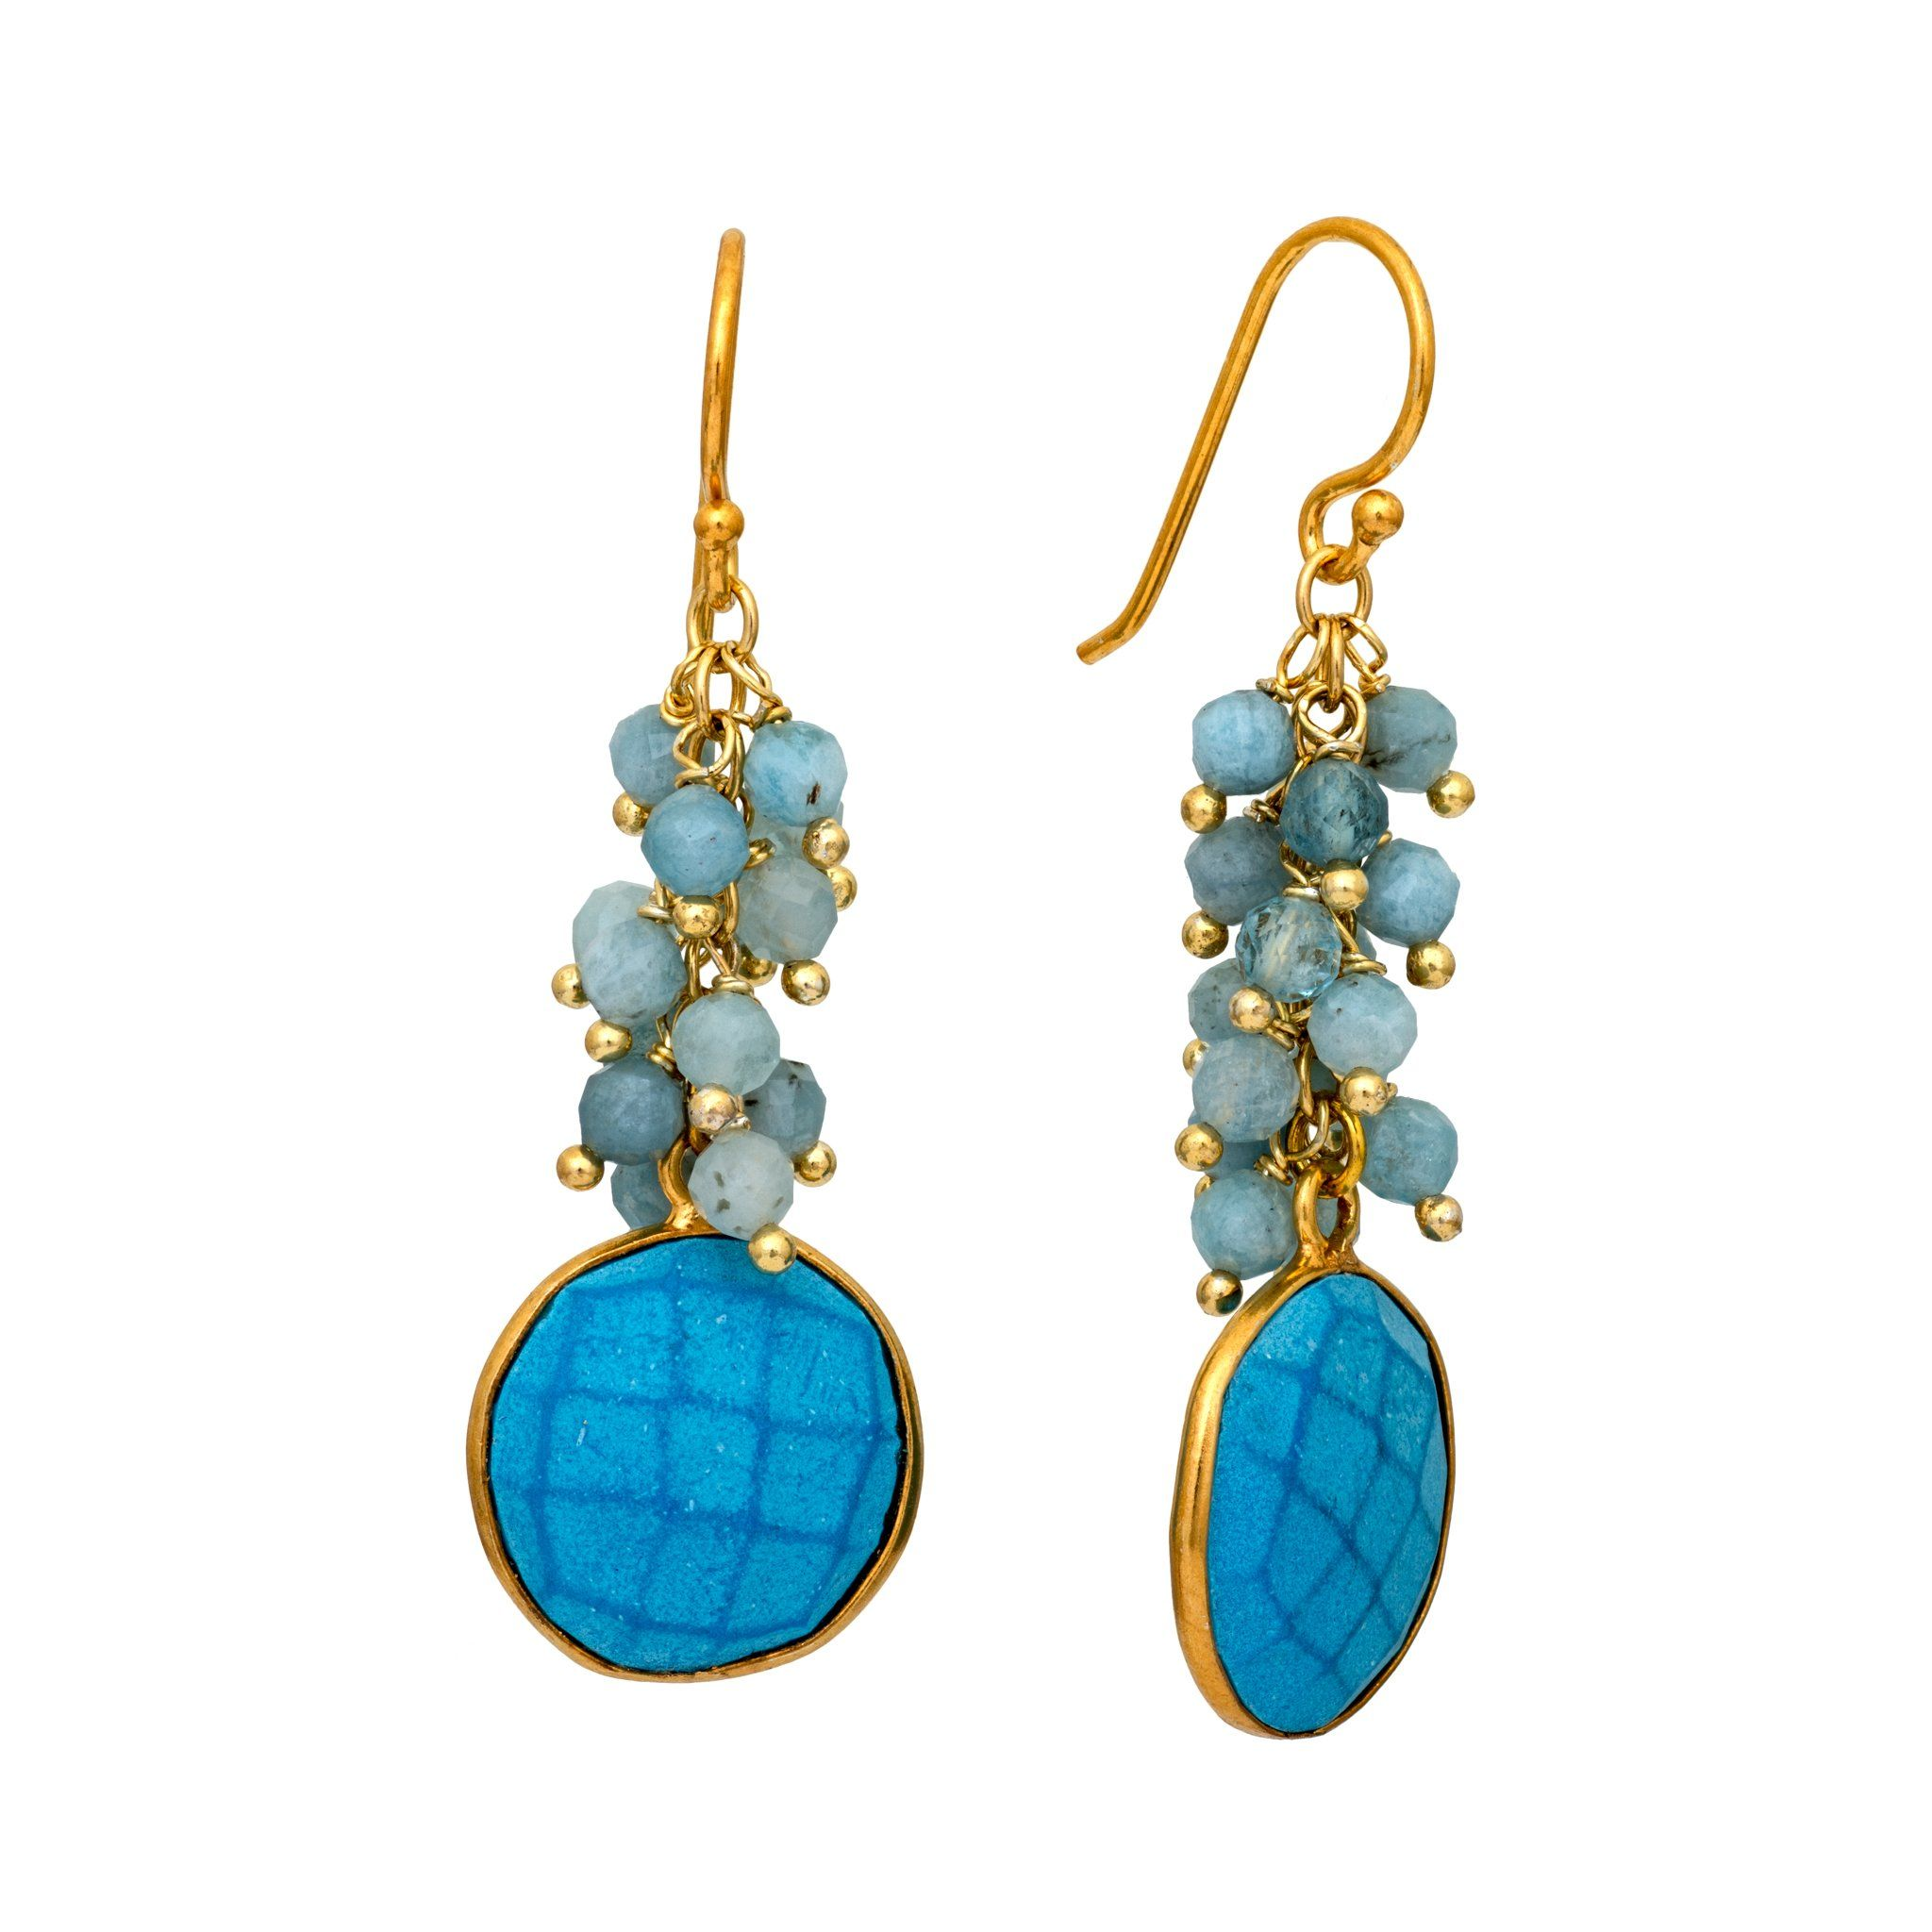 KAI turquoise cluster earrings - MadamSiam